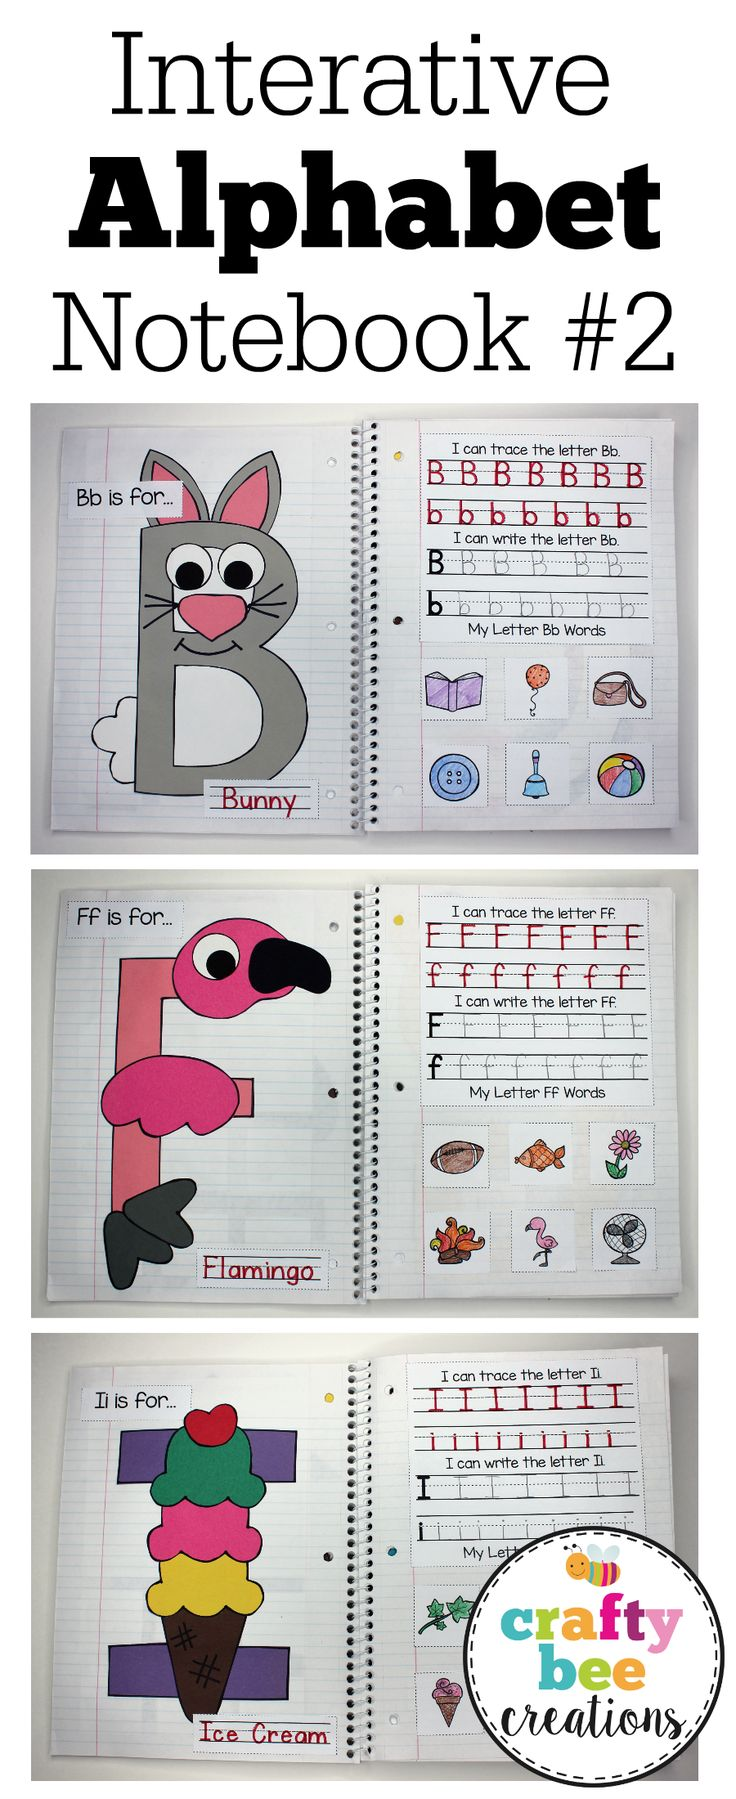 This Interactive Alphabet Notebook is perfect for working on letter recognition and writing with preschool and kindergarten students. The letter crafts also help with the fine motor skills of cutting with scissors and gluing. Includes all 26 letters and promises a ton of fun!